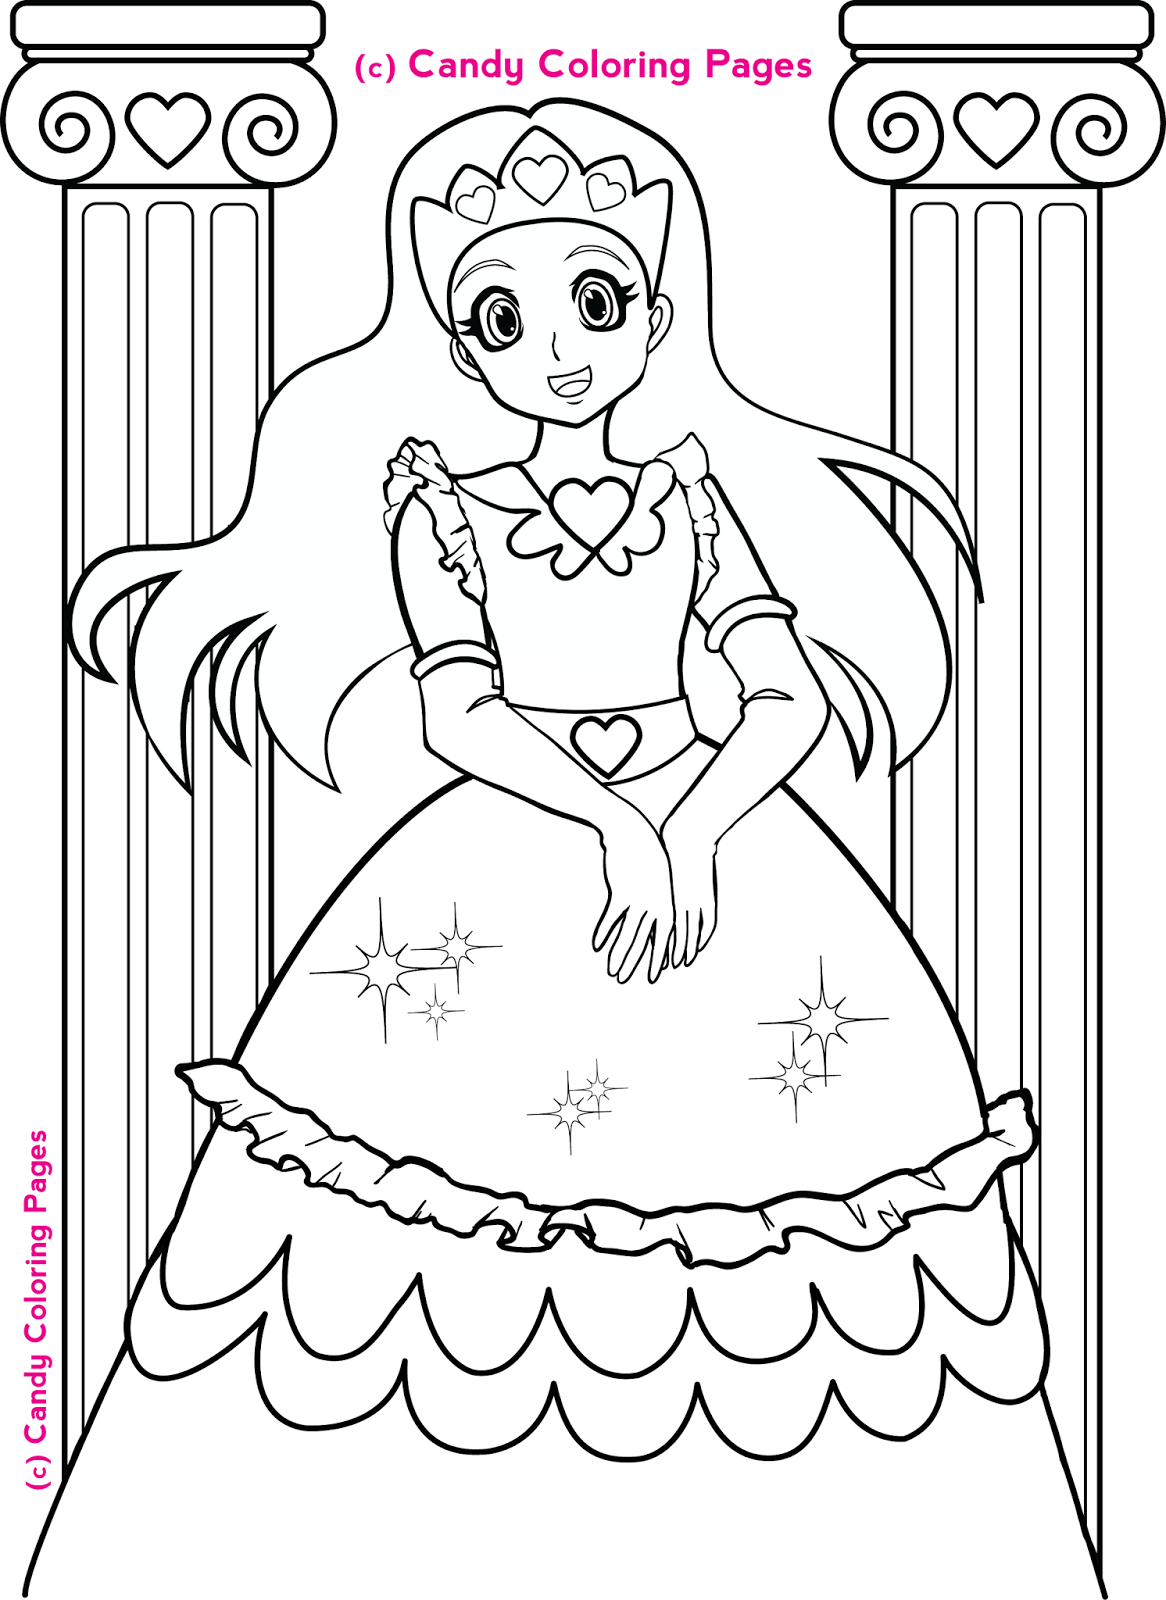 Kids free online coloring games for girls - Kids Free Online Coloring Games For Girls 22